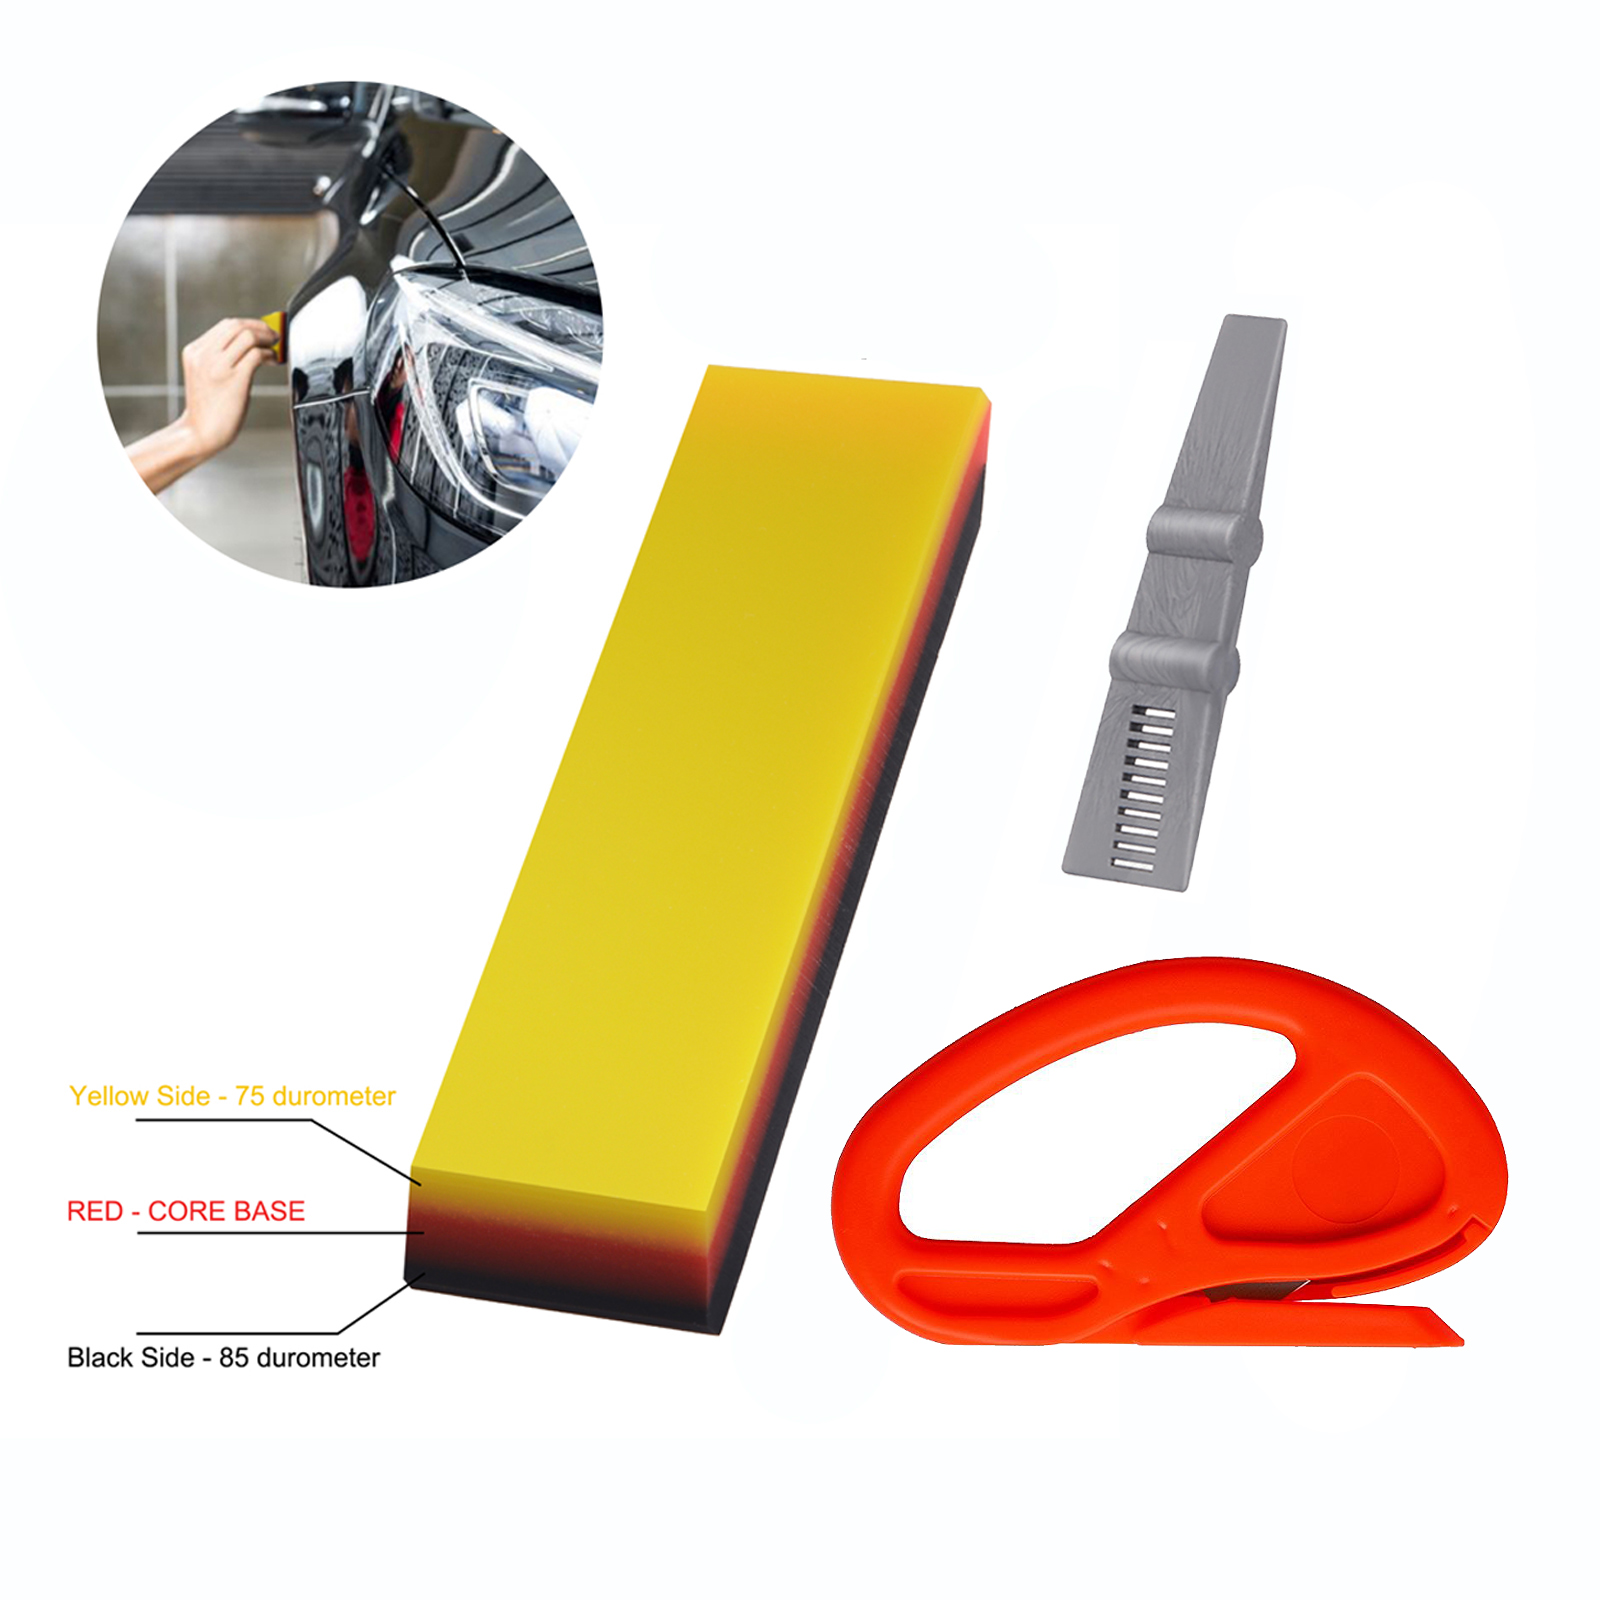 EHDIS Carbon Car Wrap Vinyl Tool Protective Foil Film Install Soft TPU Squeegee Scraper Metal Knife Window Tint Styling Tool Kit